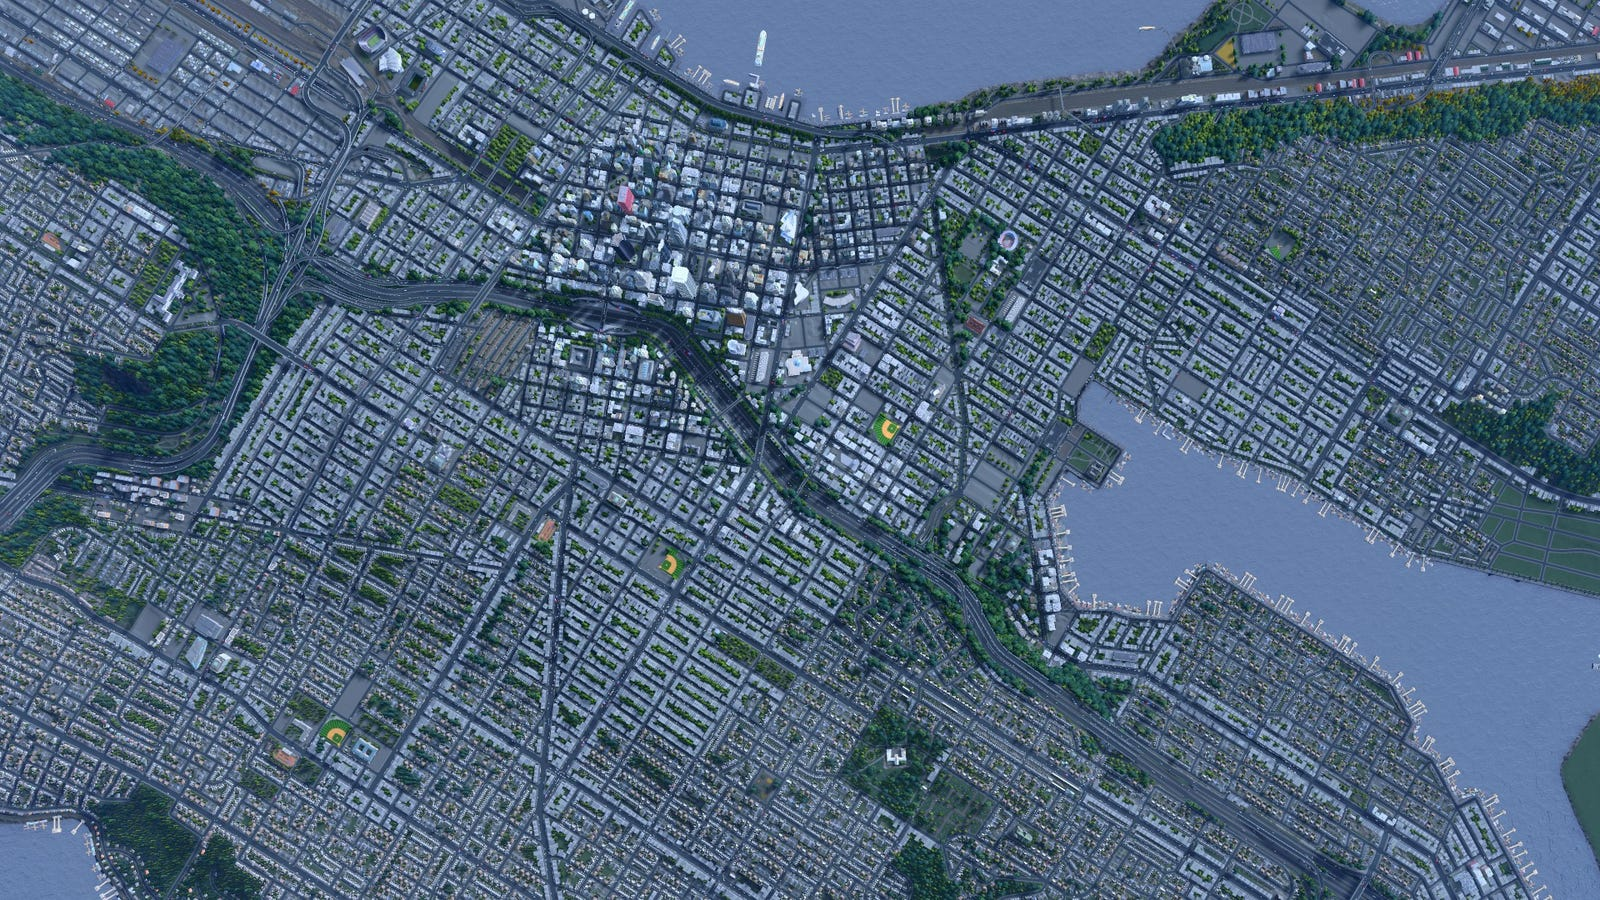 Seattle, Recreated Almost Perfectly In Cities: Skylines